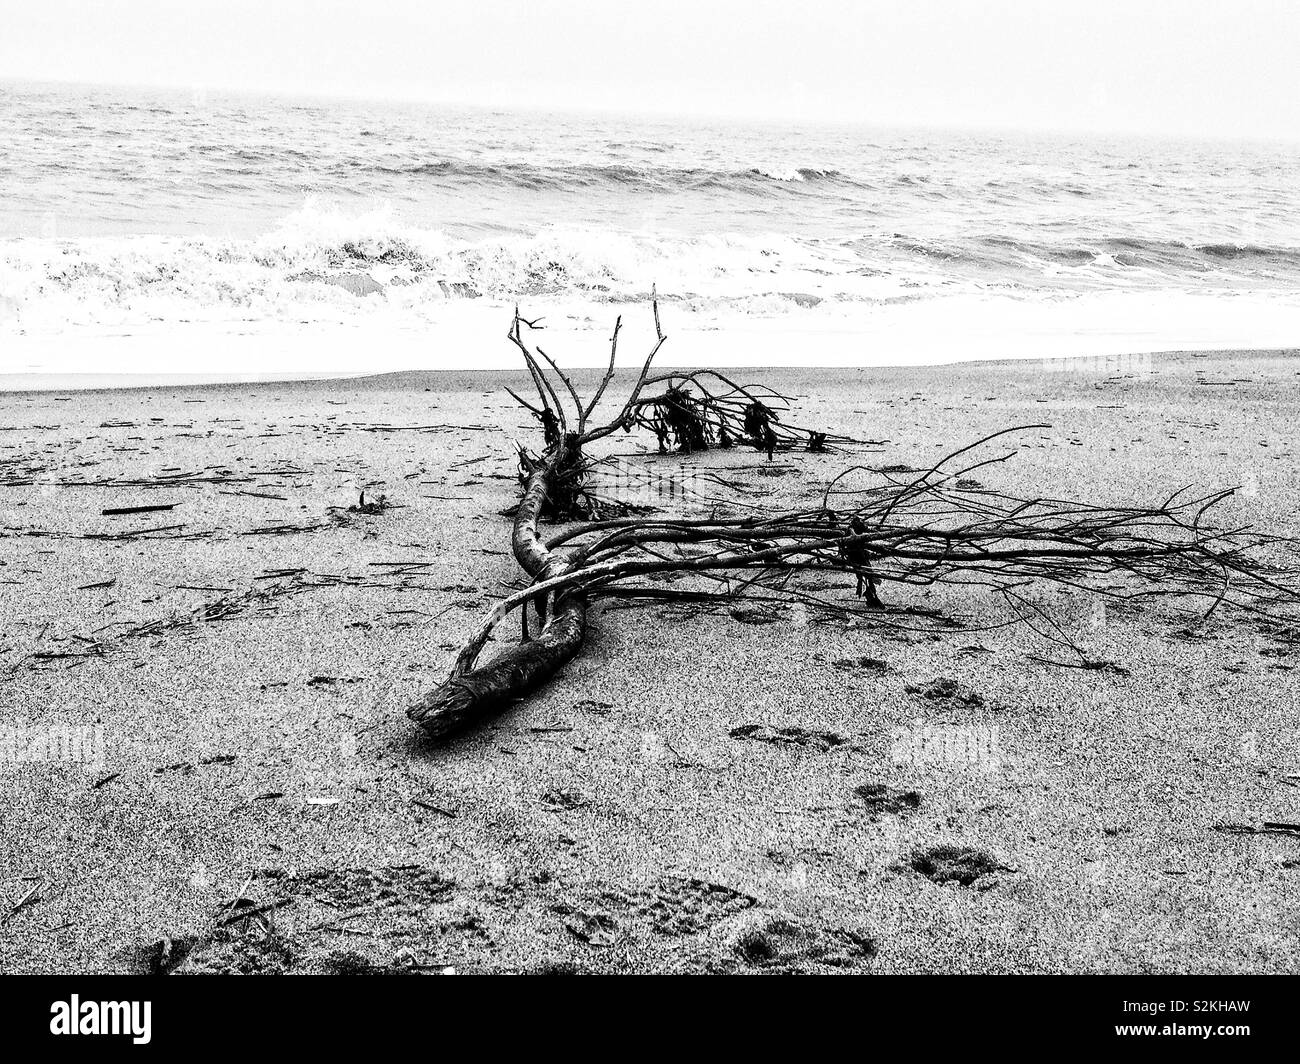 Driftwood on a deserted winter beach. - Stock Image